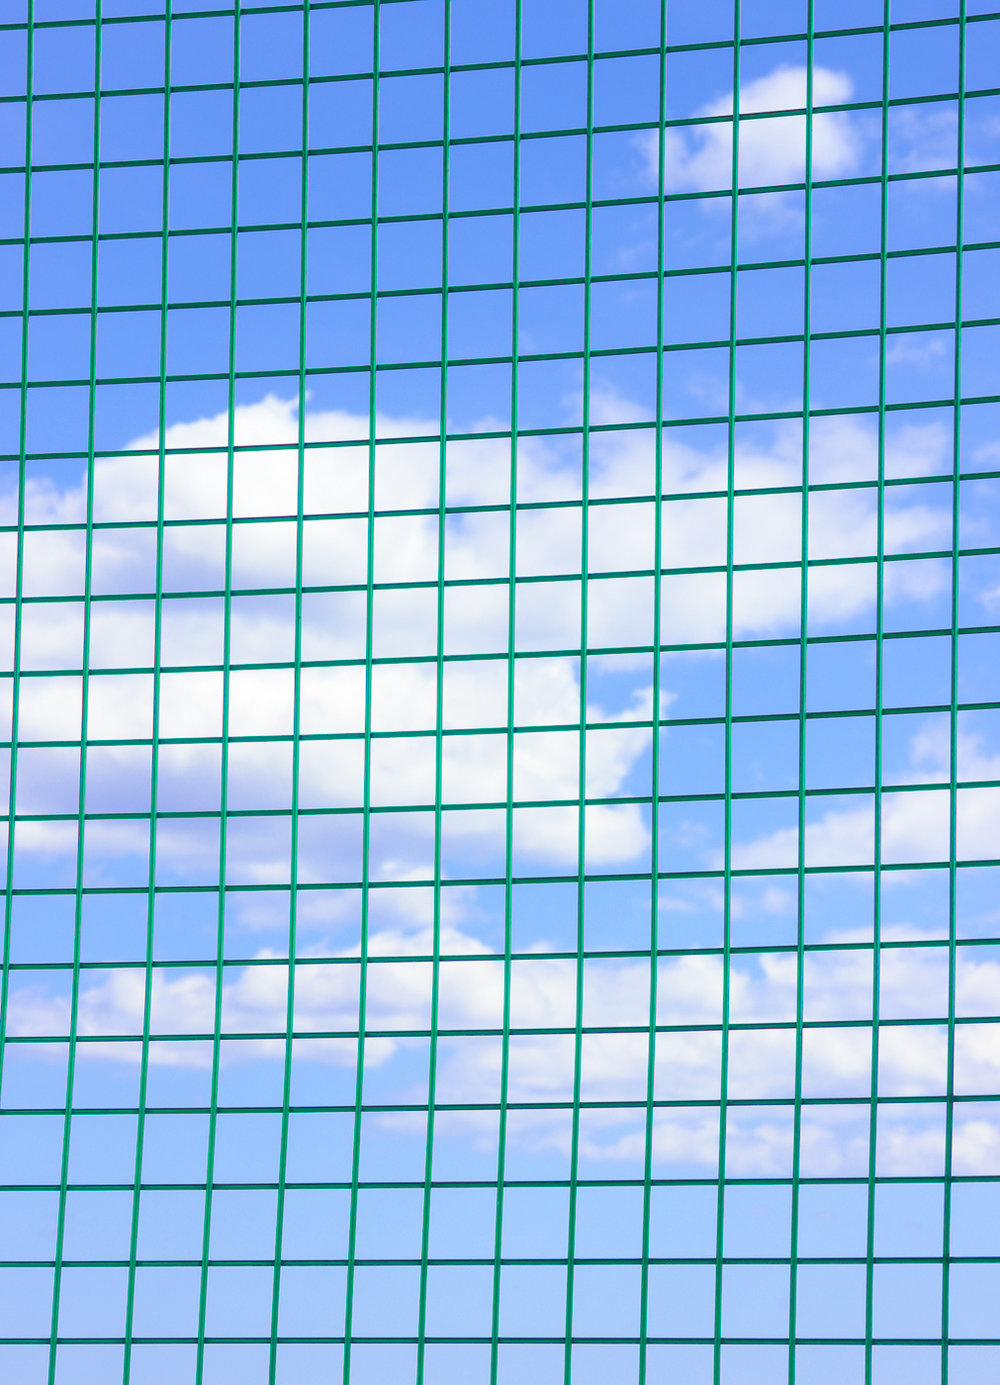 Halifax clouds on wire mesh by toronto commercial fashion artist photographer justin atkins.jpg.jpg